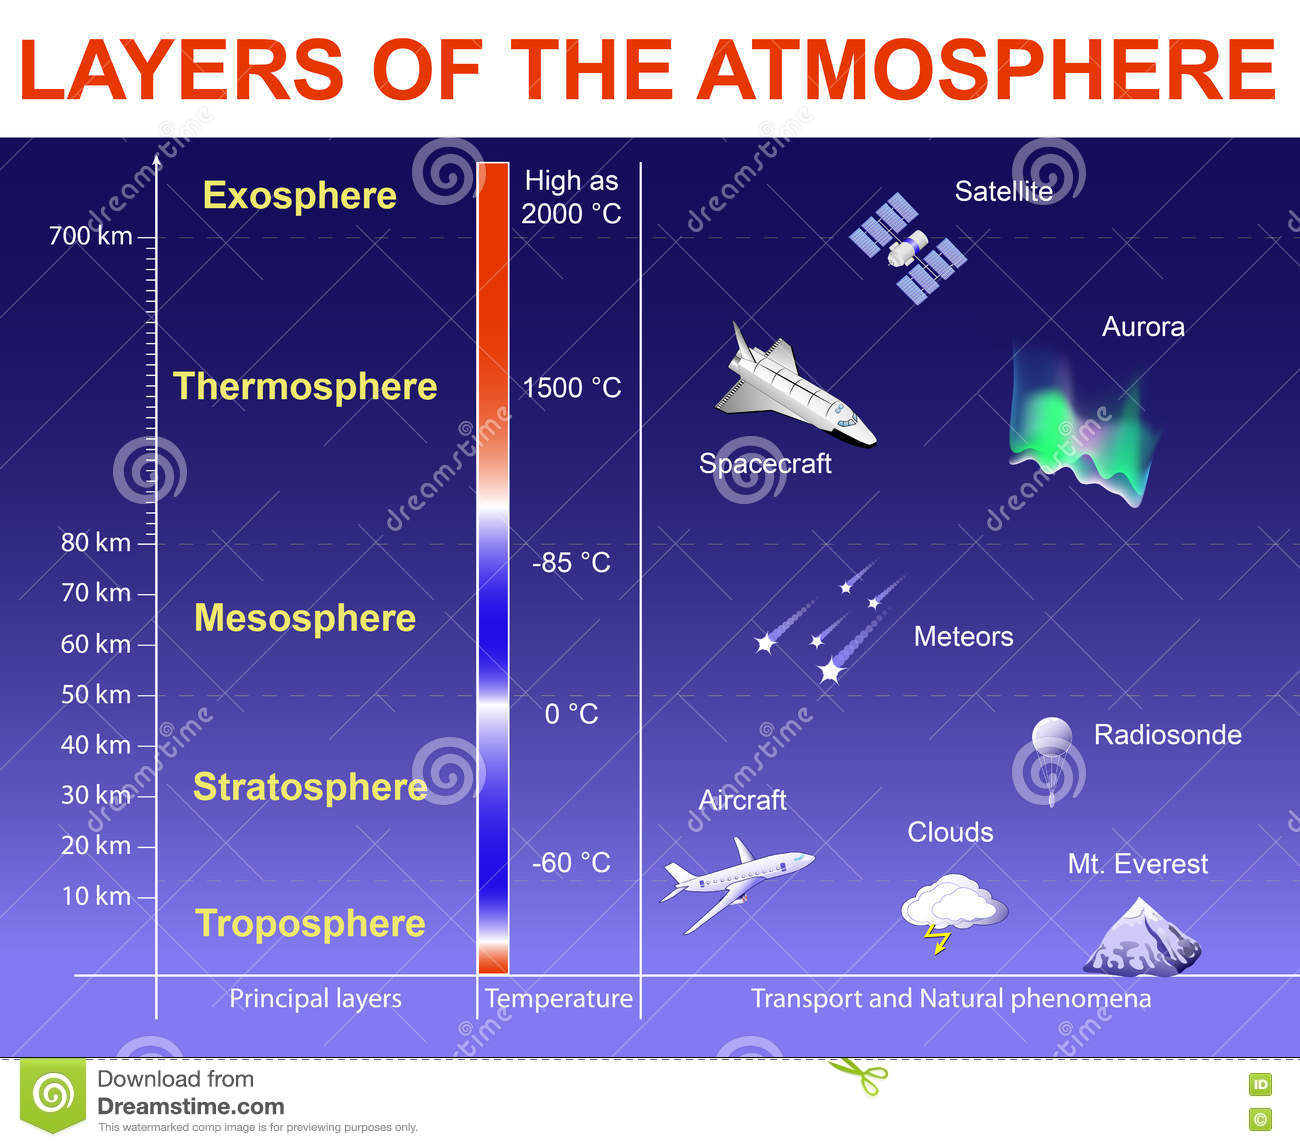 hight resolution of vertical structure of the earth s atmosphere layers drawn to scale objects within the layers are not to scale